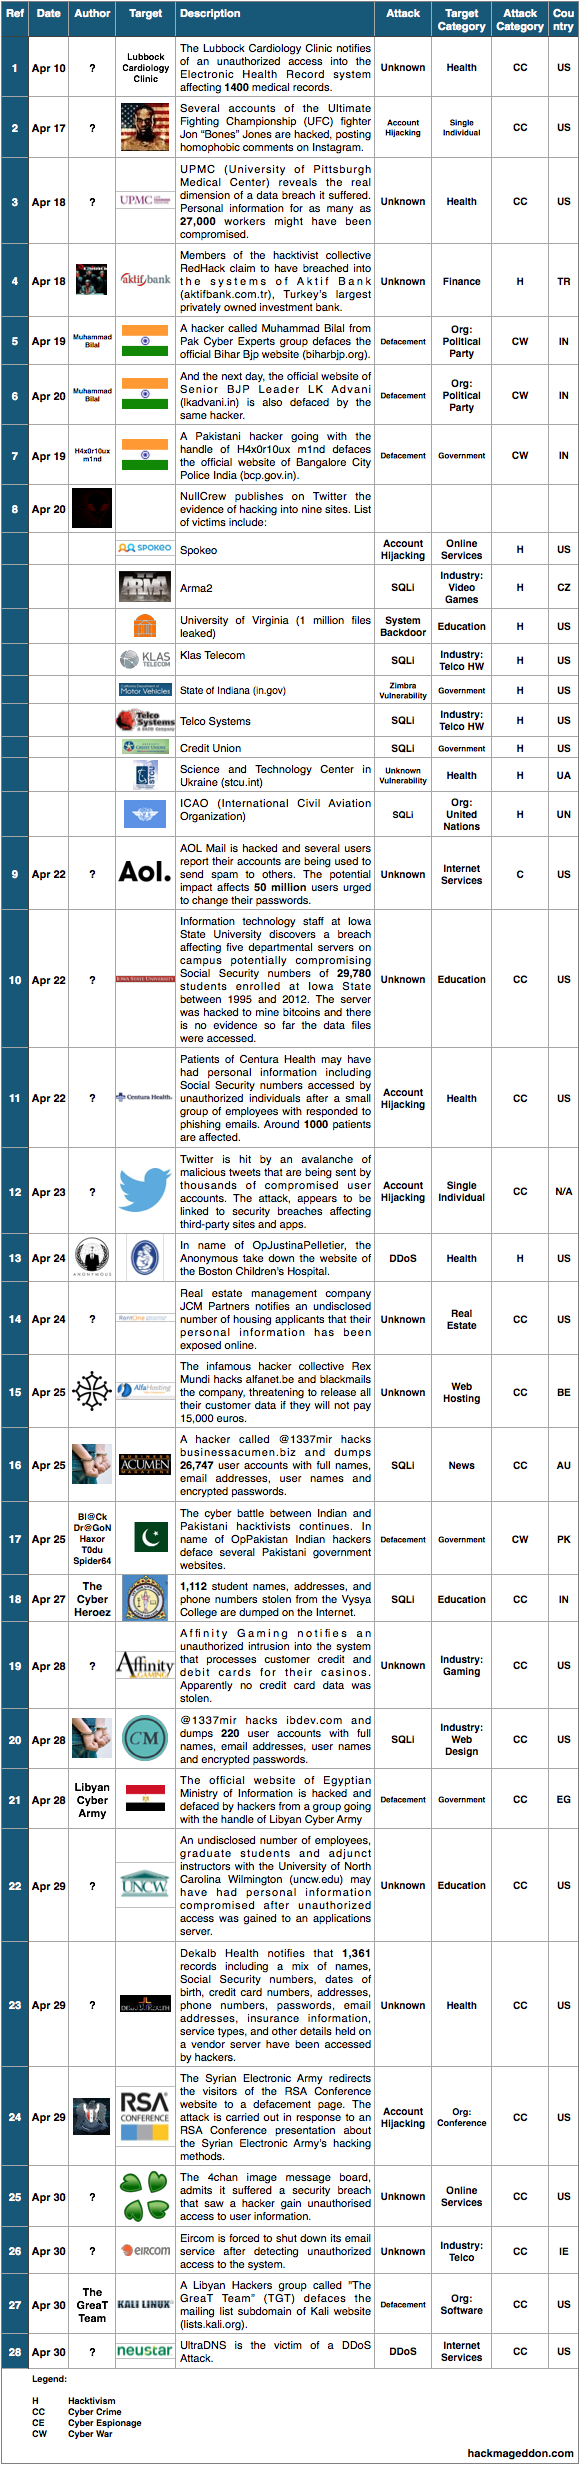 16-30 Apr 2014 Cyber Attacks Timelines